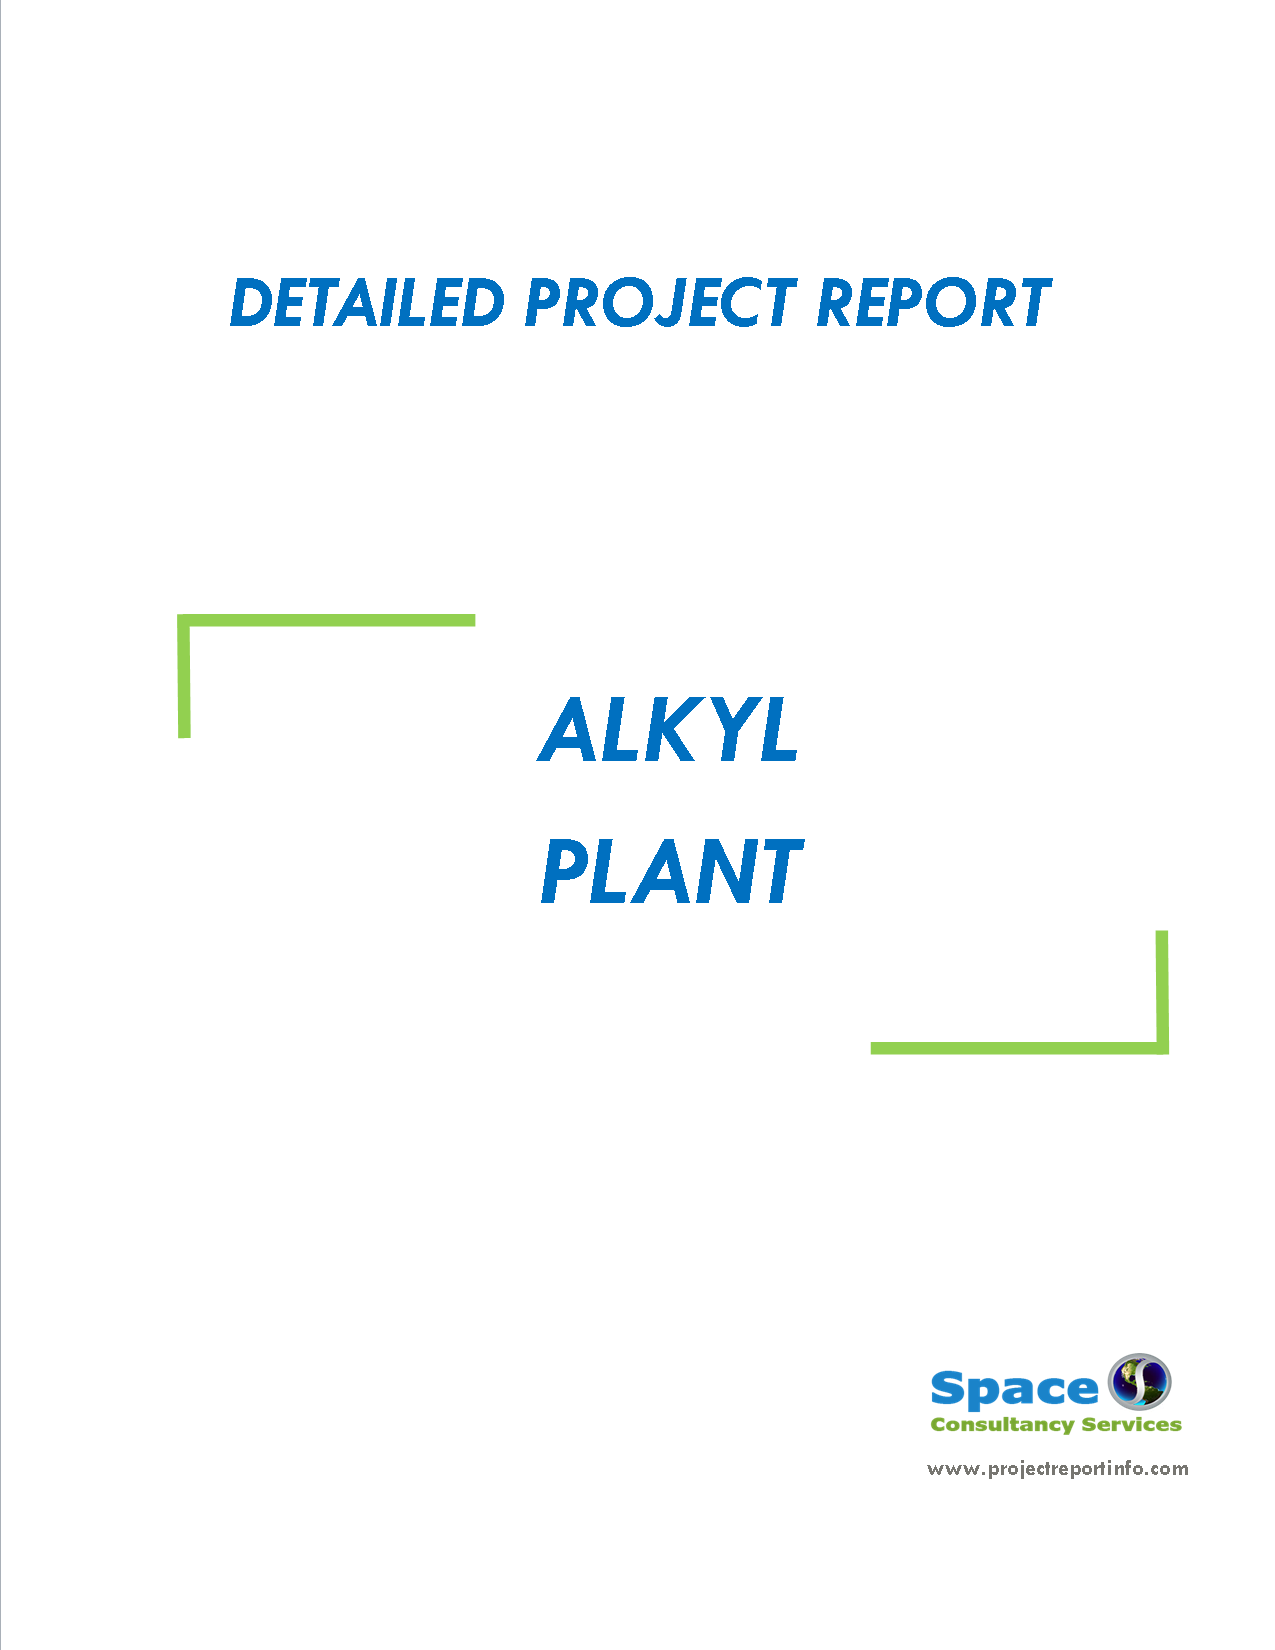 Project Report on Alkyl Plant